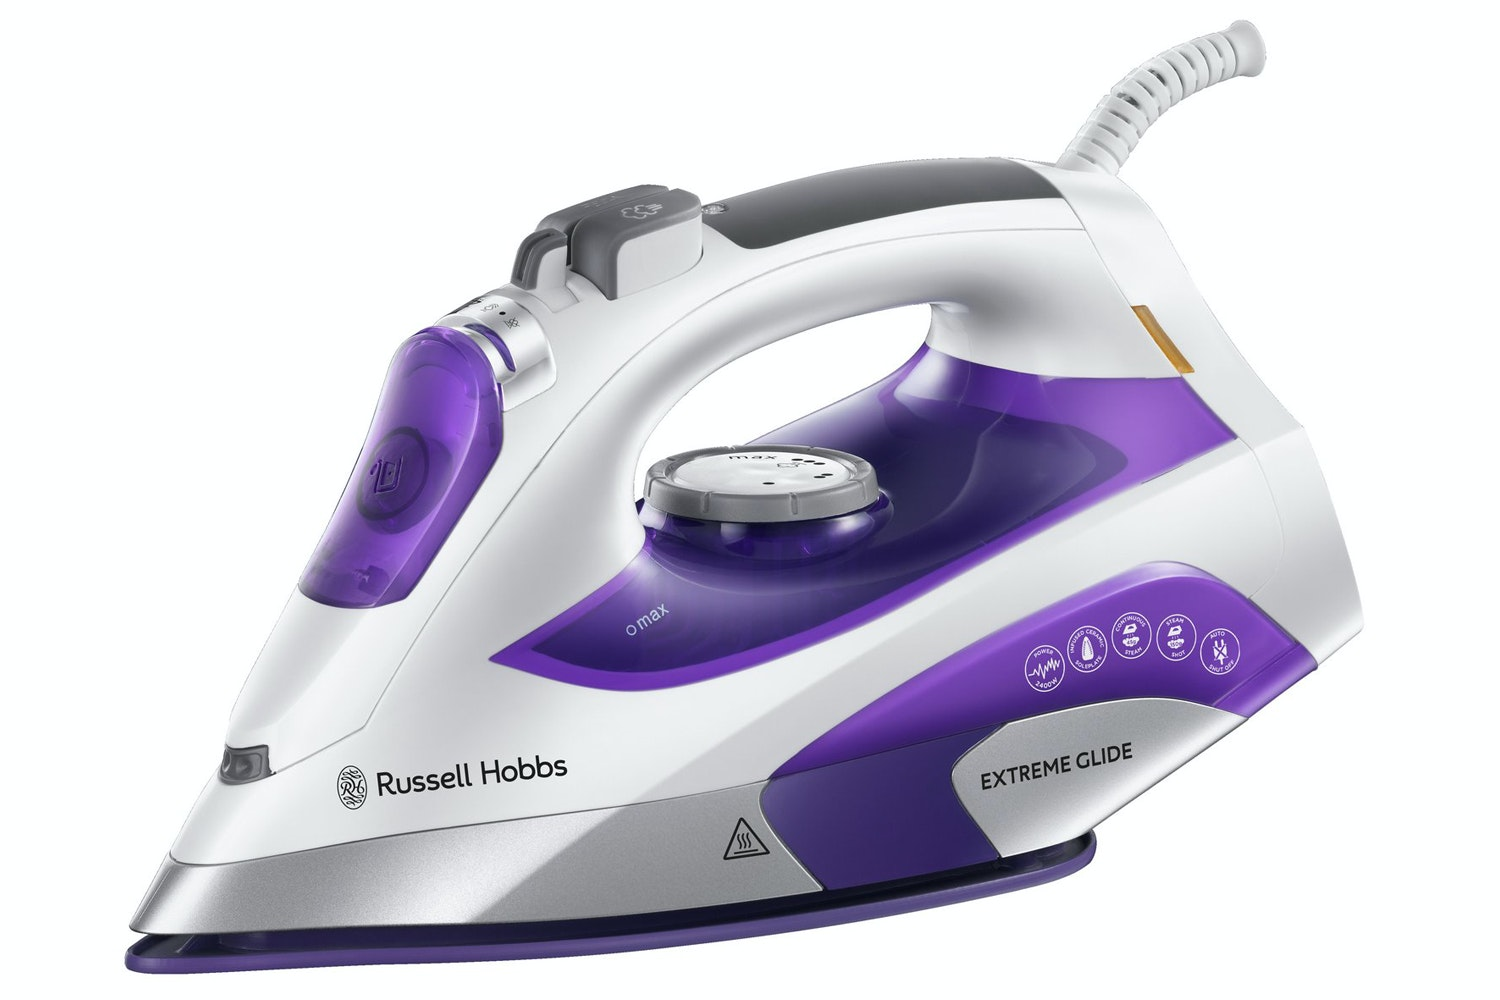 Russell Hobbs 2400W Extreme Glide Steam Iron | 21530